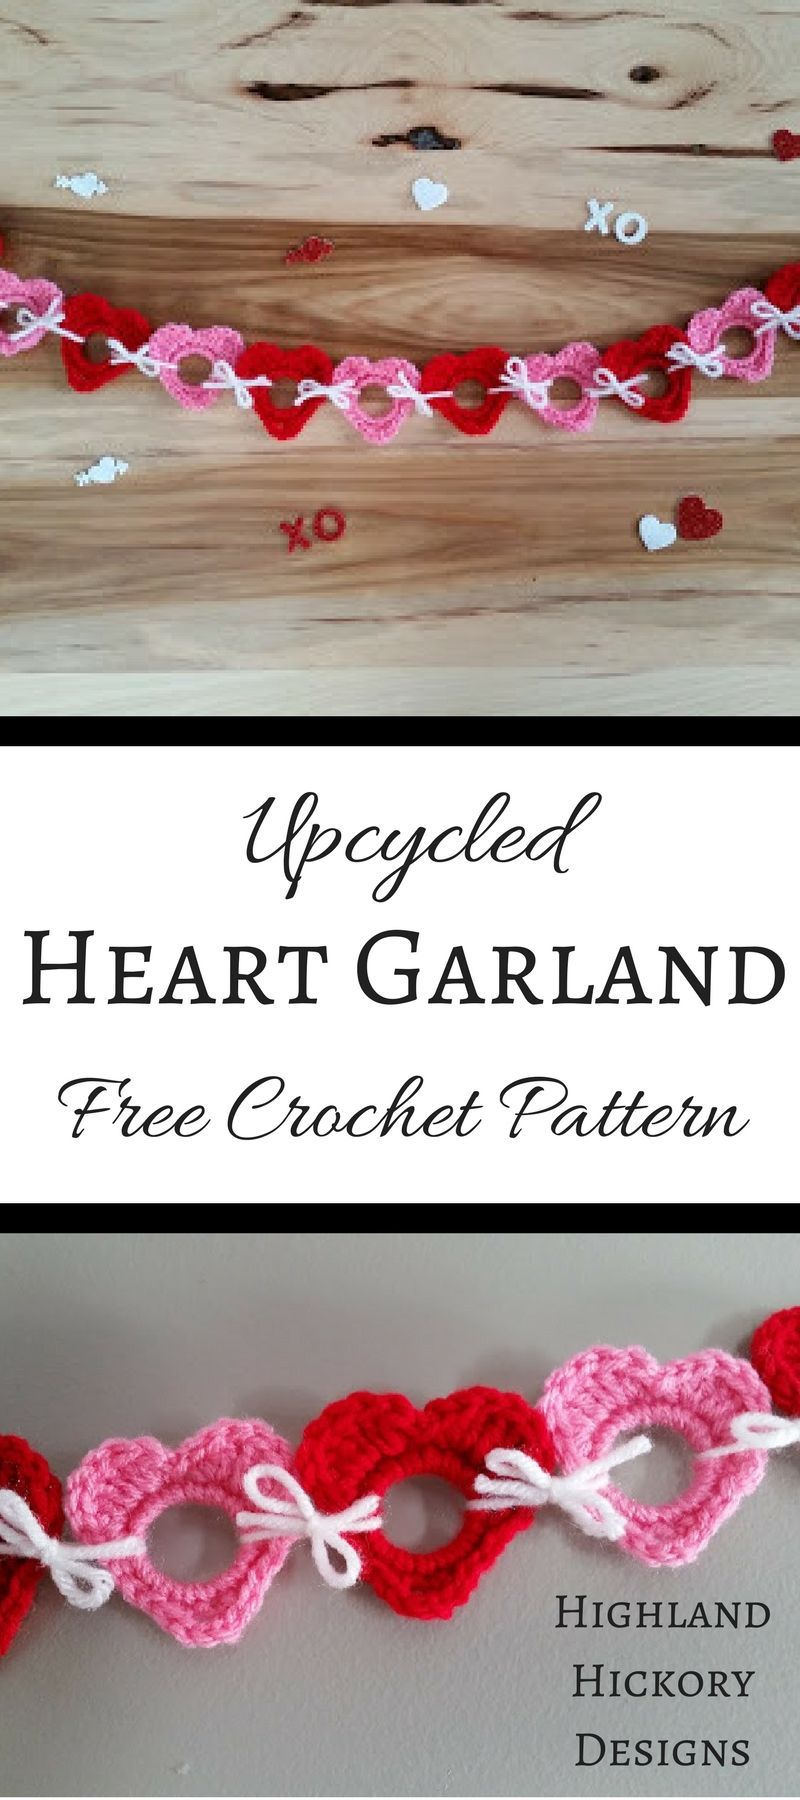 Upcycled Shamrocks - Free Crochet Pattern | Ganchillo, Pulseras y Tejido